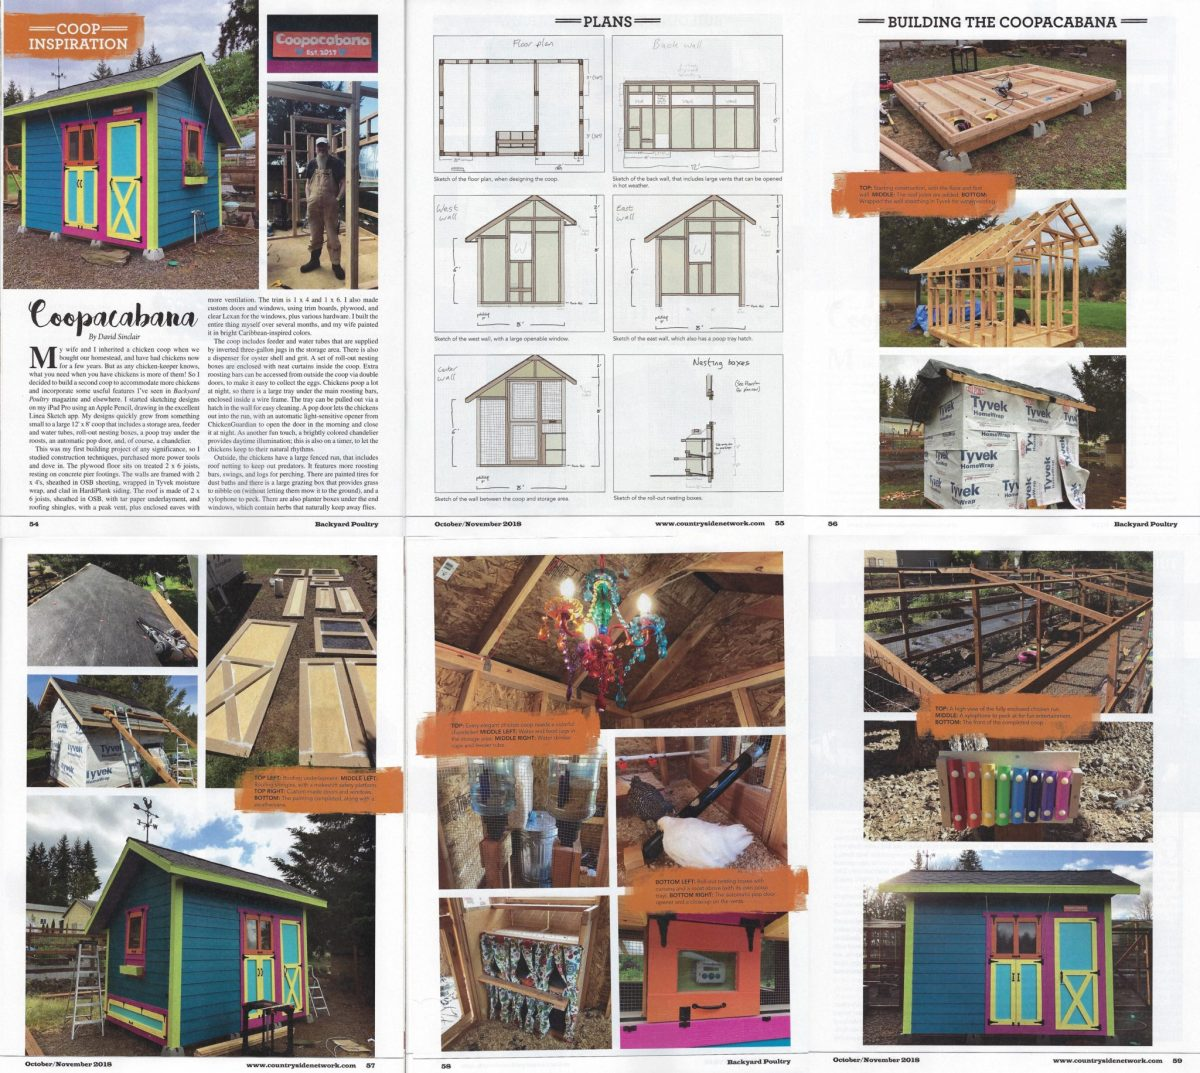 Backyard Poultry Magazine Article Yellow Cottage Homestead